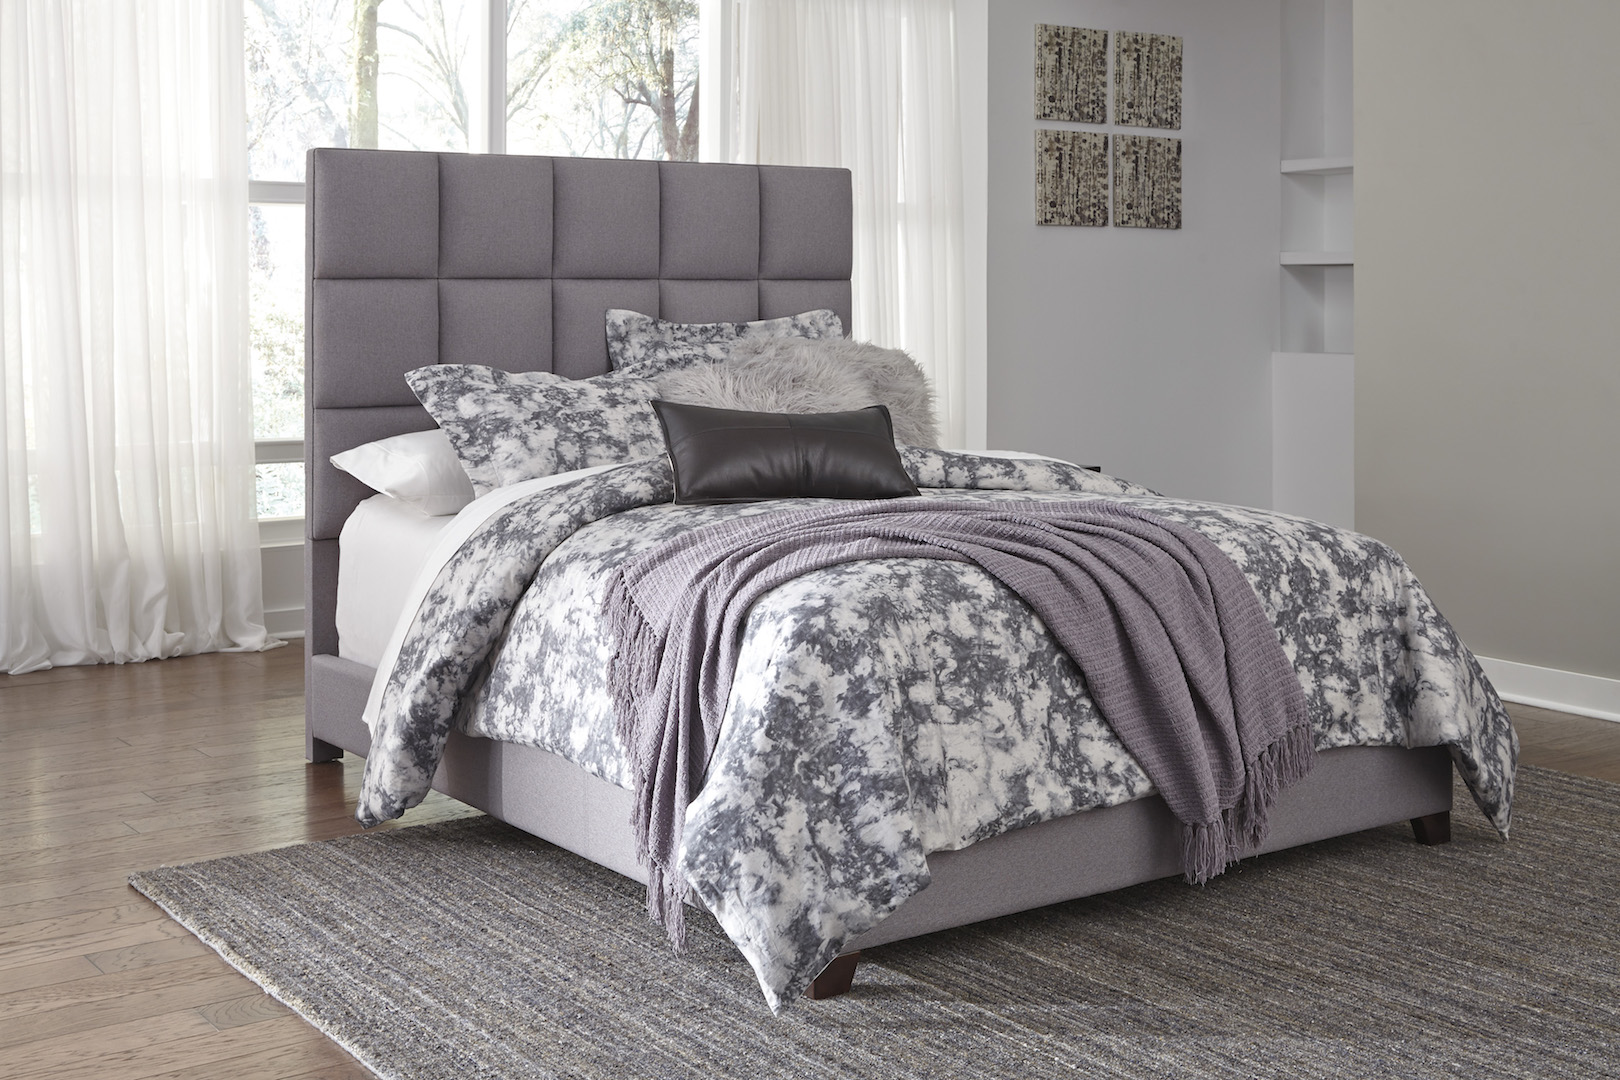 Ashley Furniture B130 381 Contemporary Queen Gray Fabric